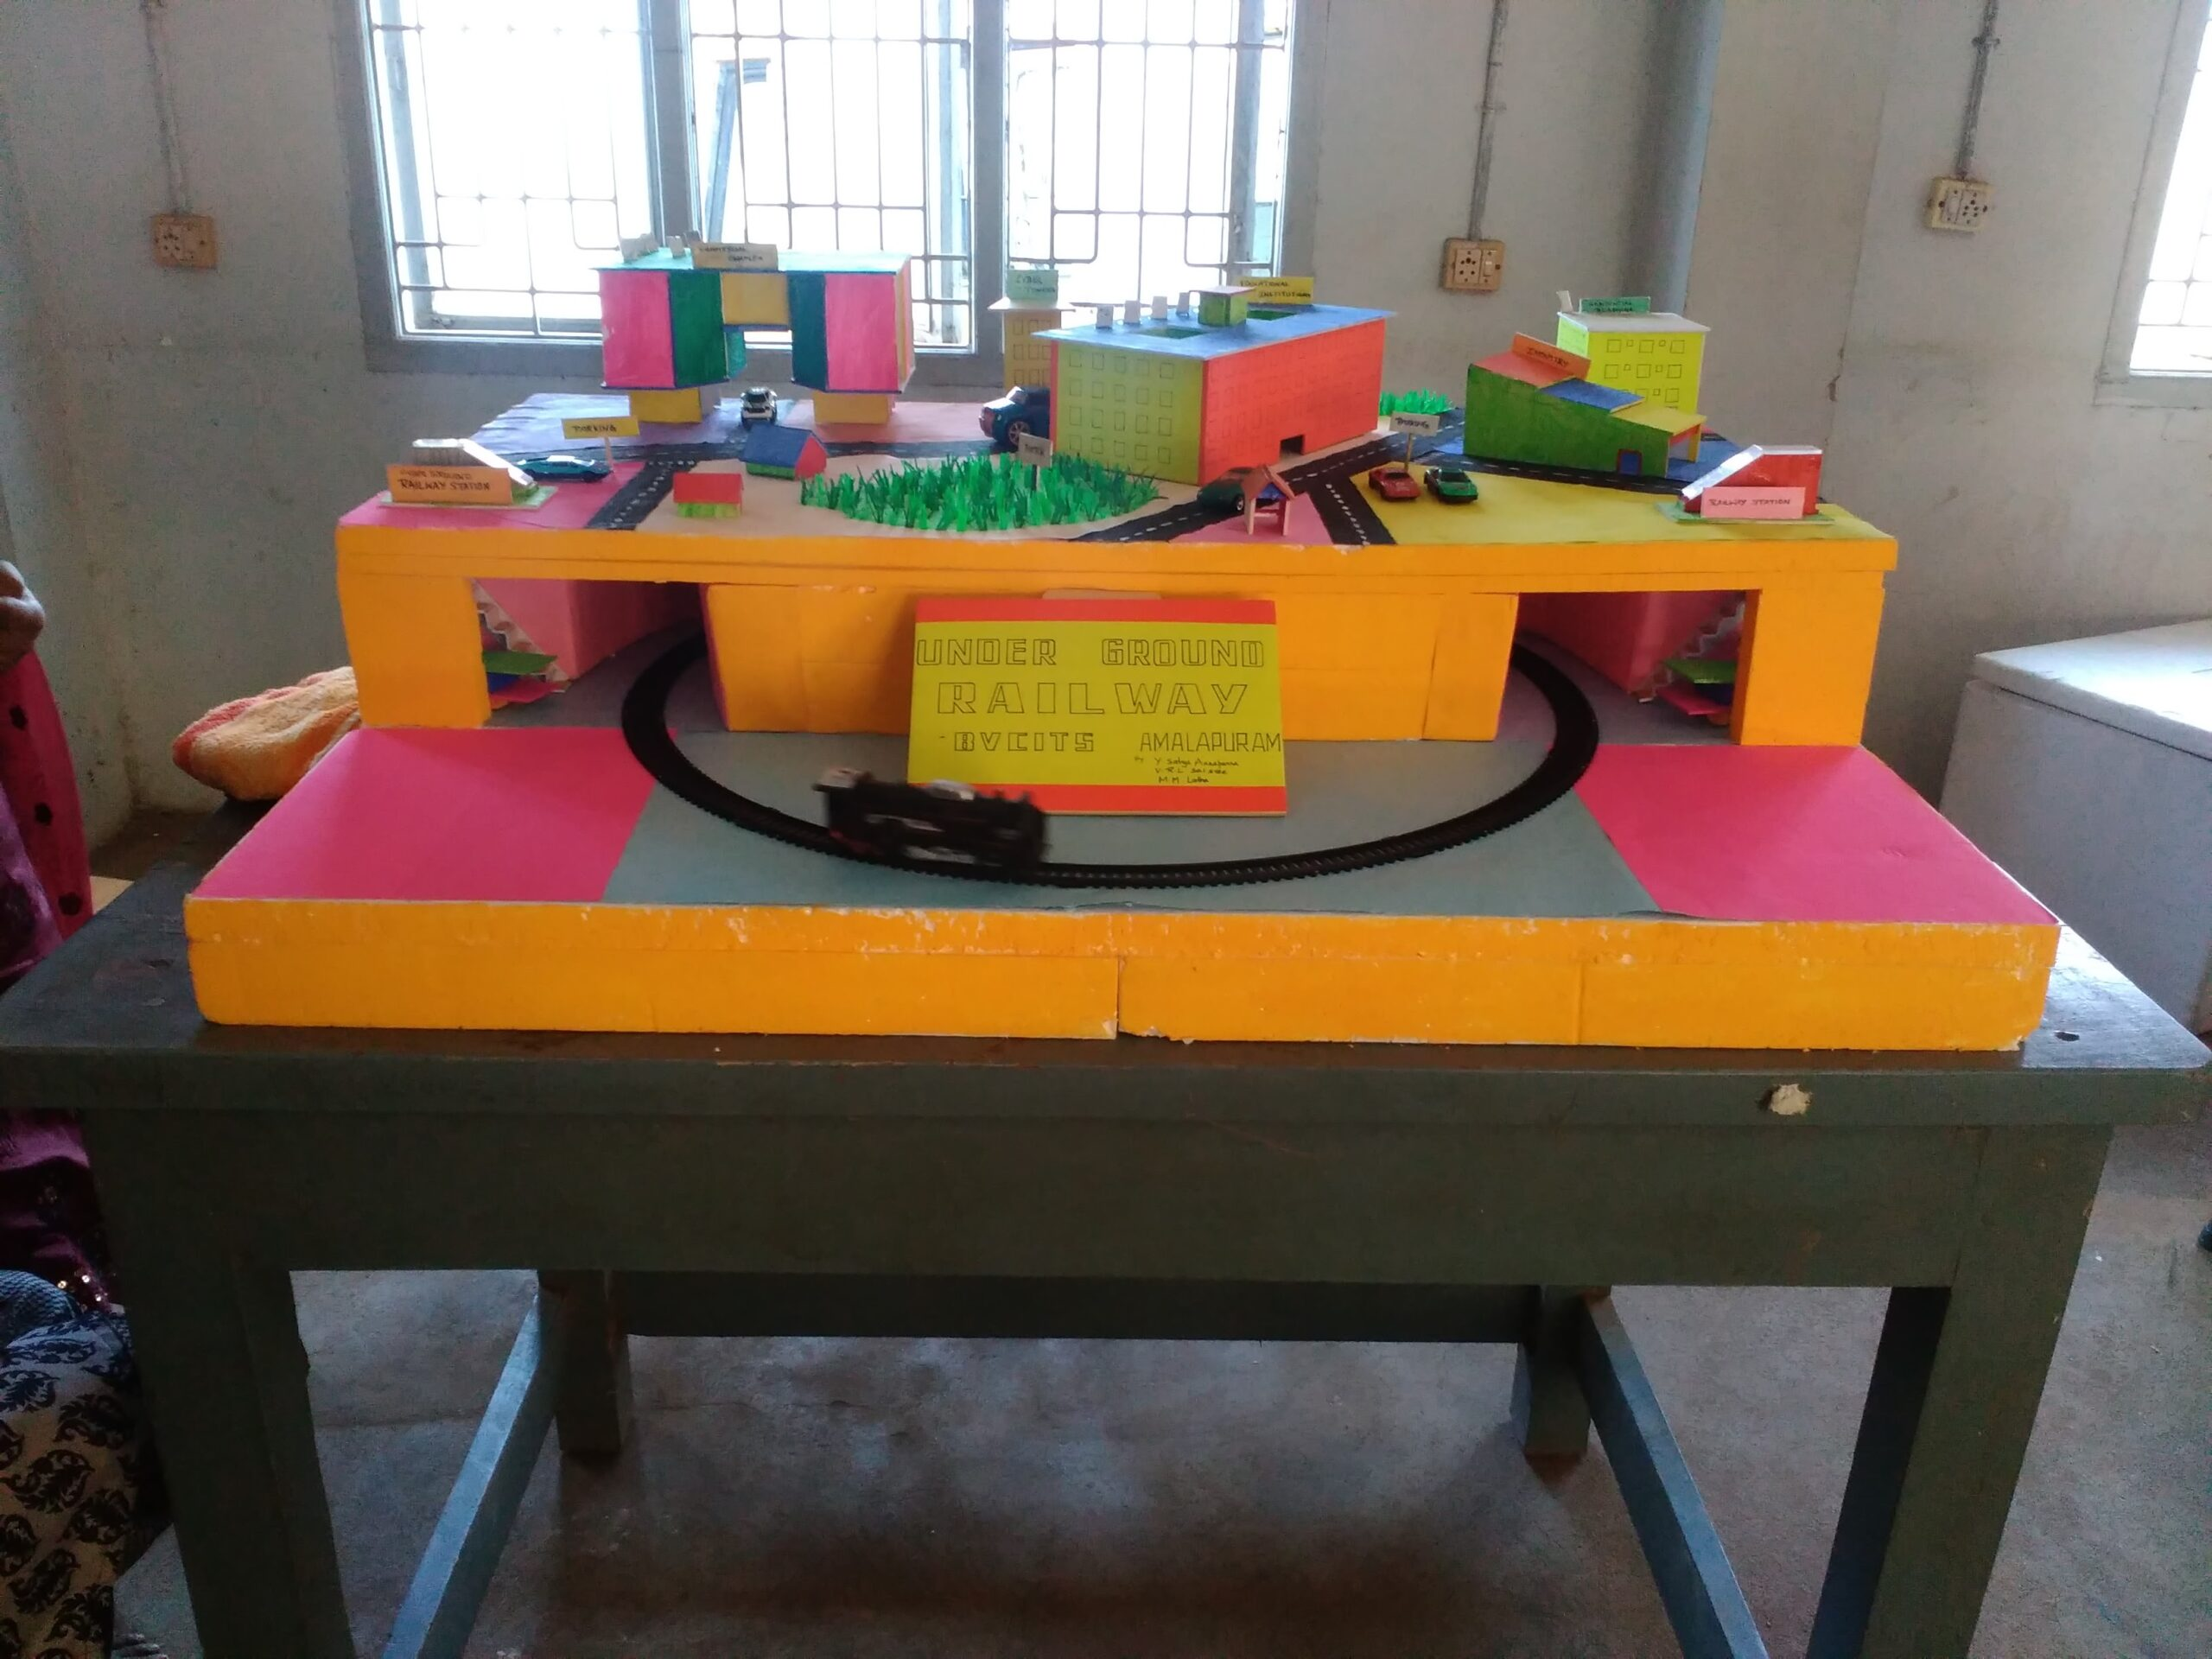 WORKING MODEL PREPARED BY STUDENTS